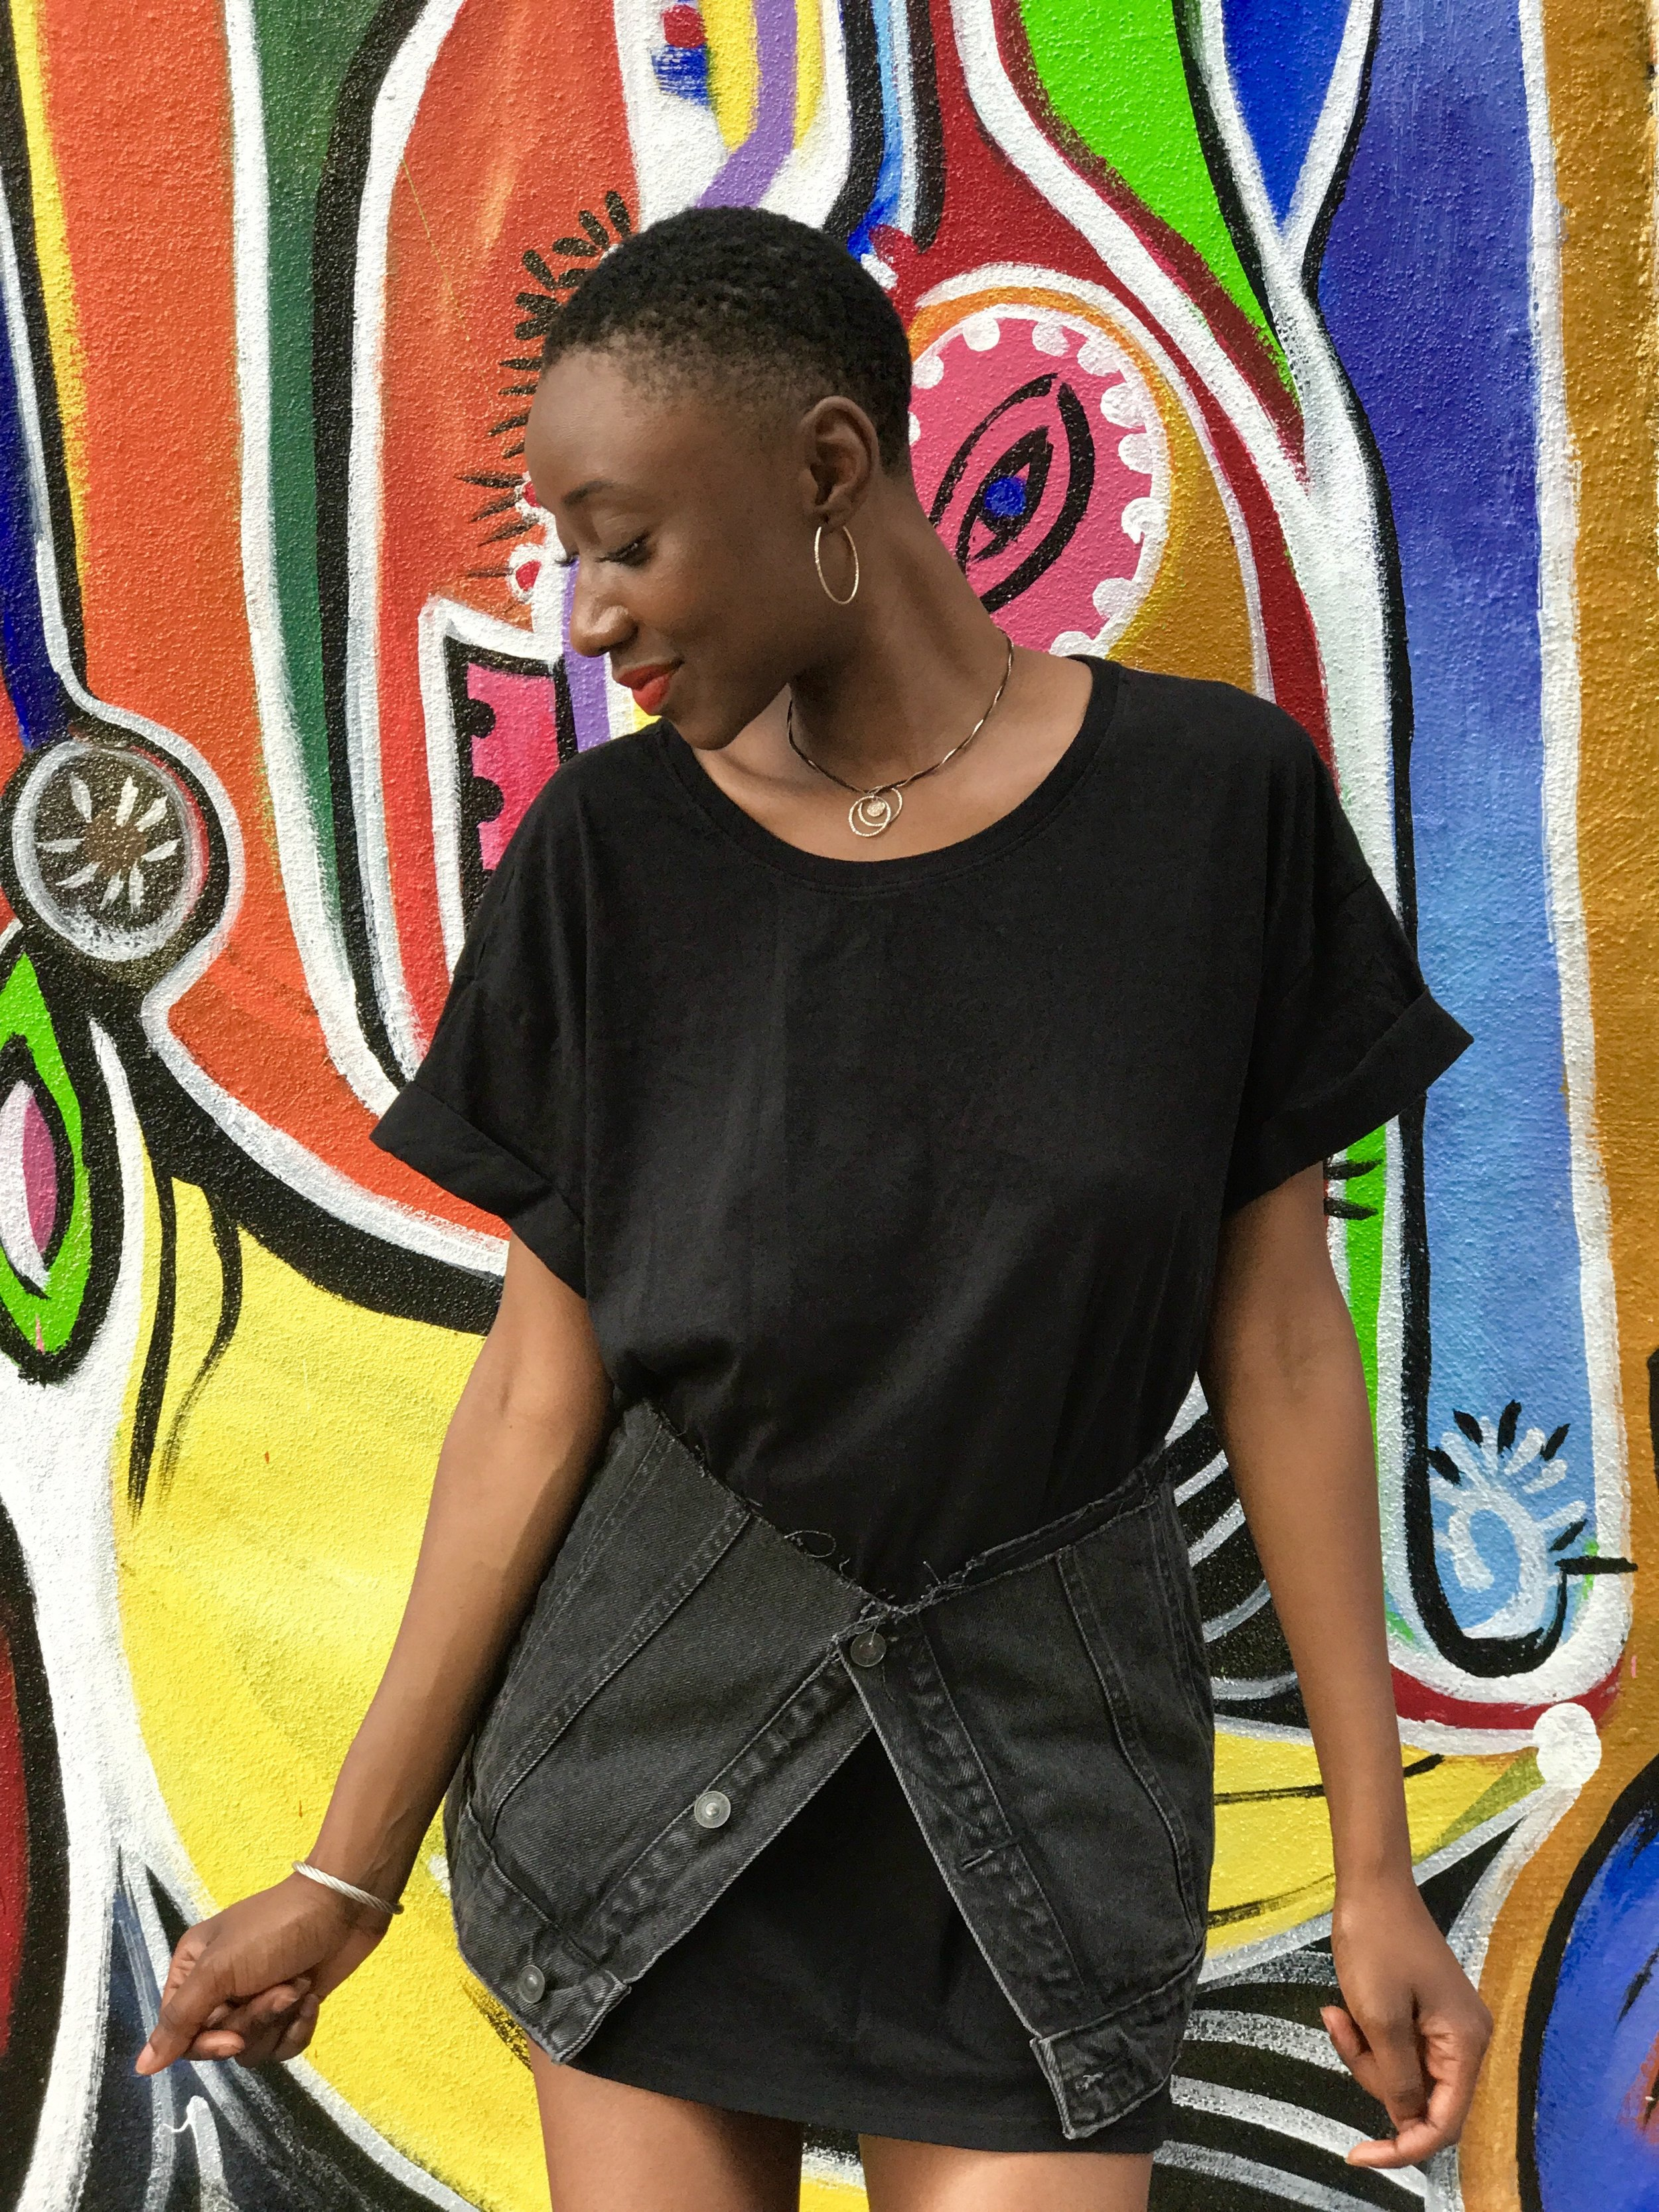 Black. - With the way my closet's set up, I could really wear black the rest of the year. With that being said, click below to see more... Black Long Tee H&M, Charcoal denim pocket DIY, (I'm currently debating on making a few more of these to sell....Thoughts?